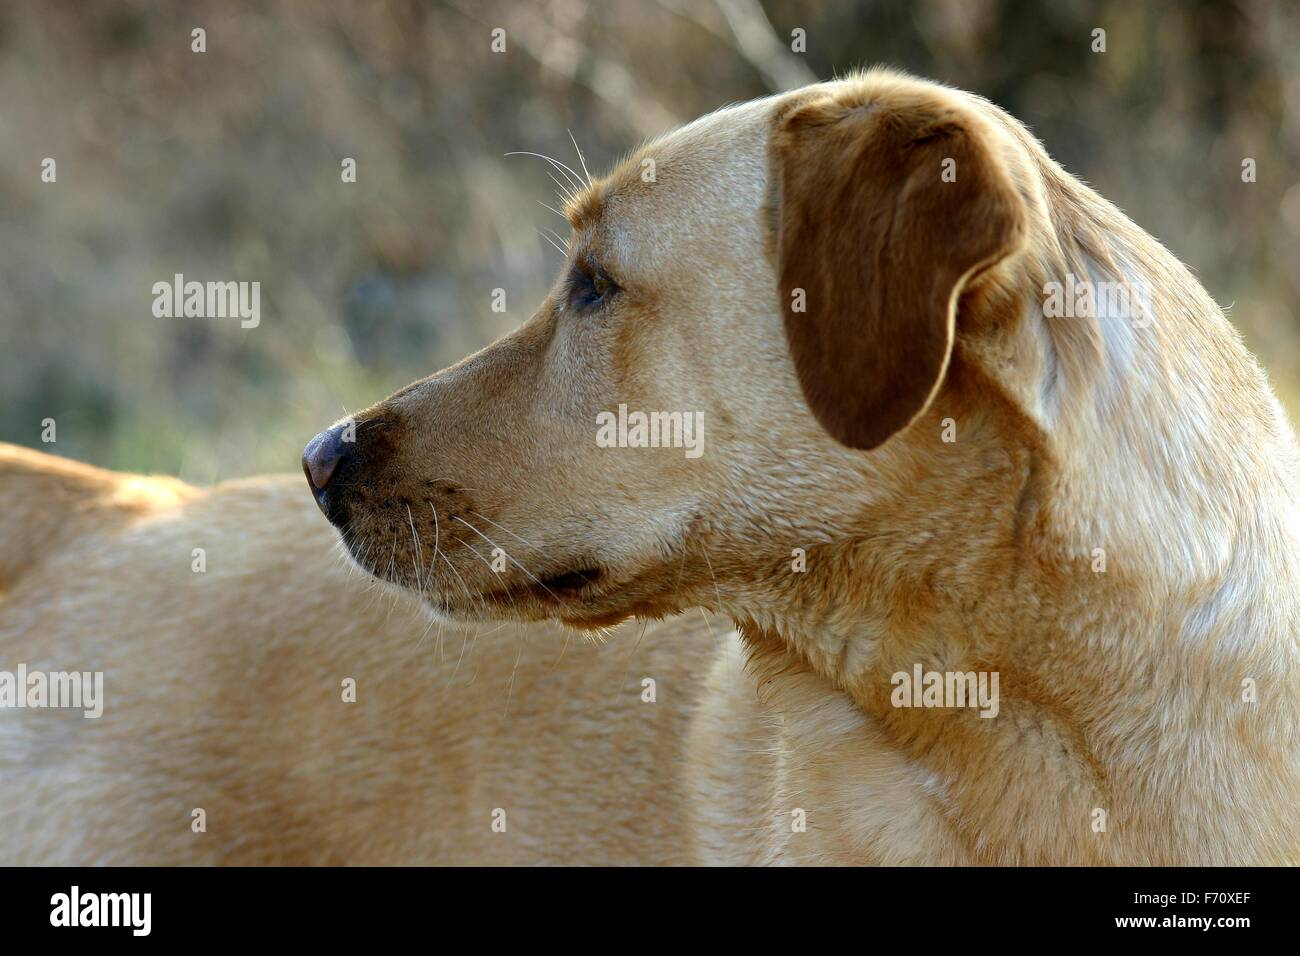 Side view of a Golden Retriever dog - Stock Image